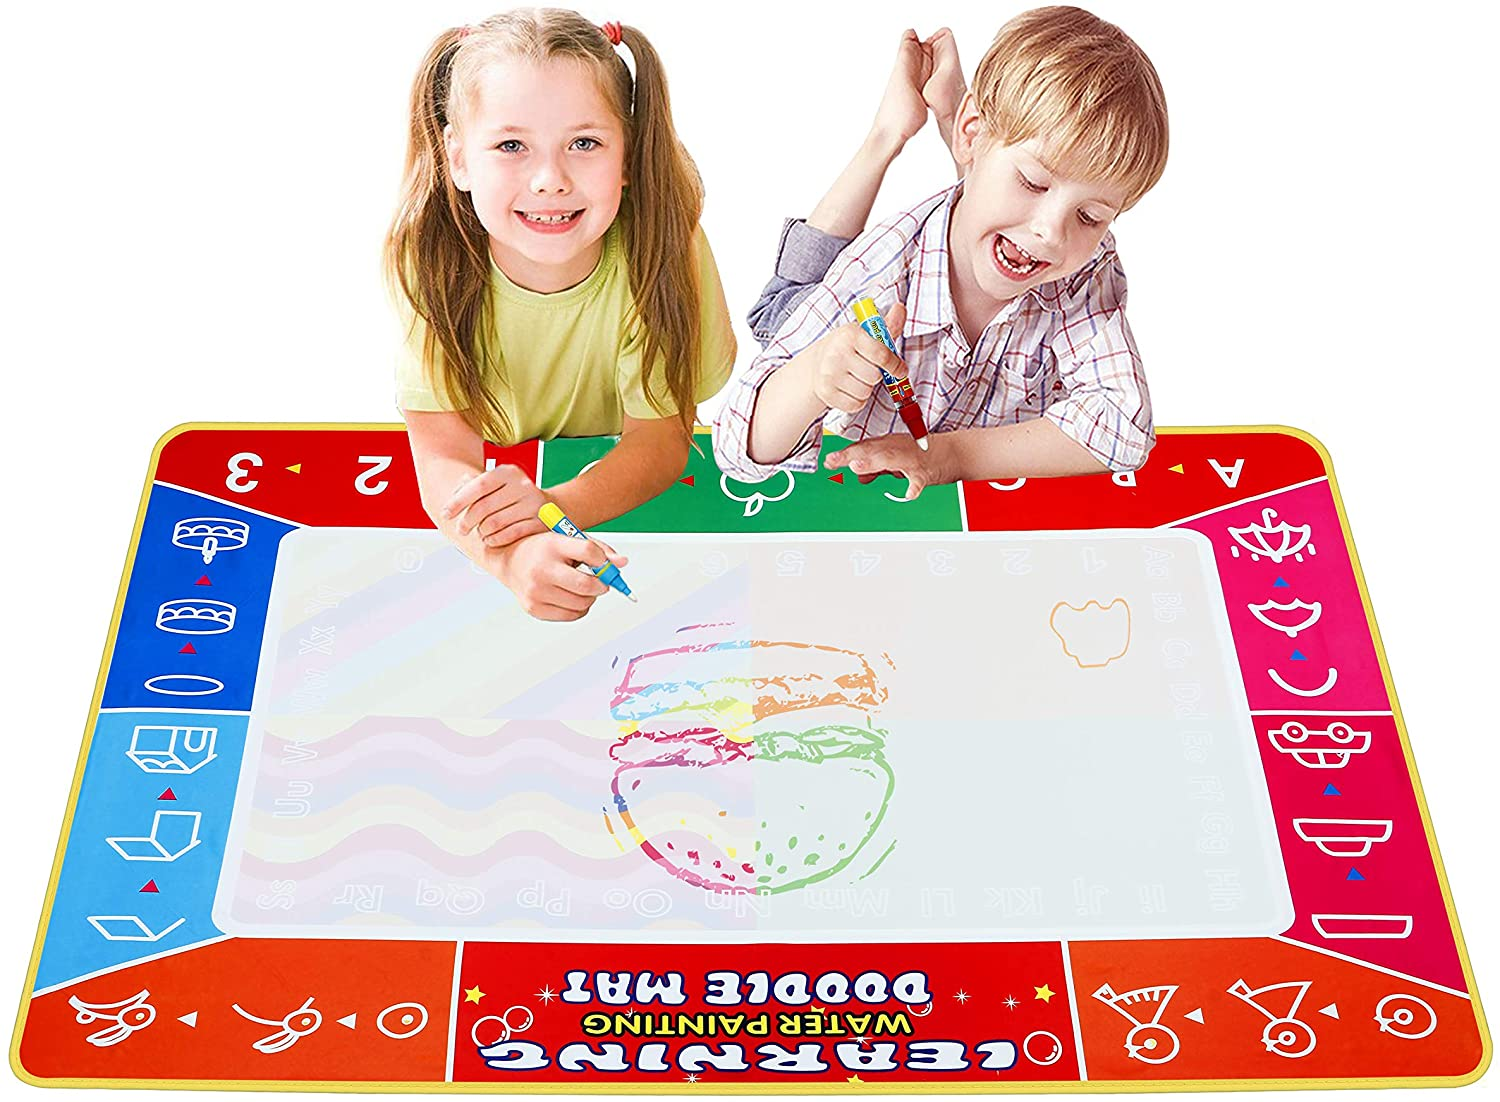 mieeter Water Drawing Pad Doodle Mat Travel Educational Toy Extra Large Coloring Art Set for Kids No Mess Reusable Ultra-Clean Washable Activity Gifts, 3 Magic Pens